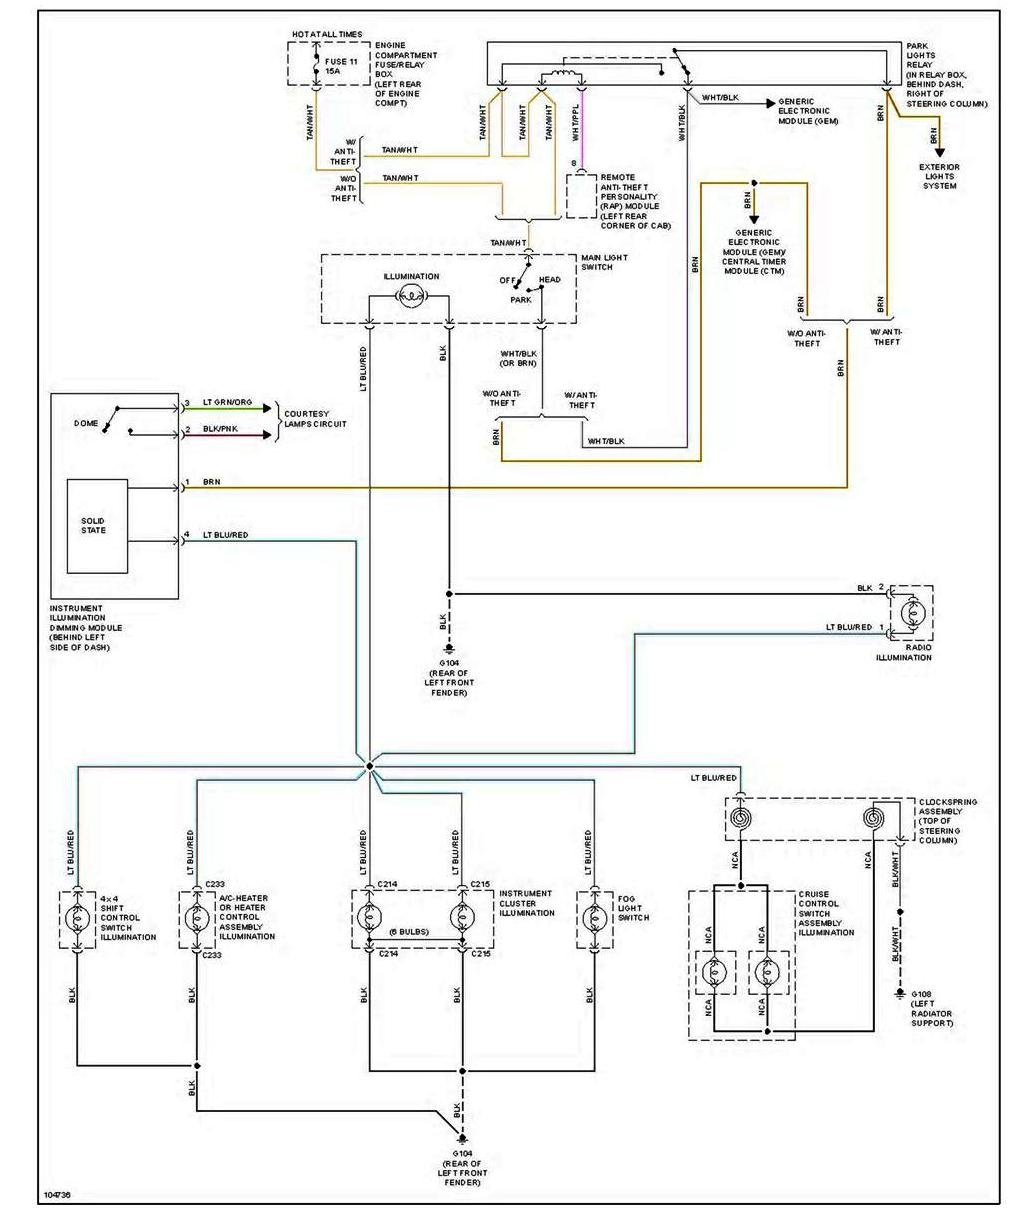 Mazda B40 Wiring Diagram   shake metal Wiring Diagram union ...